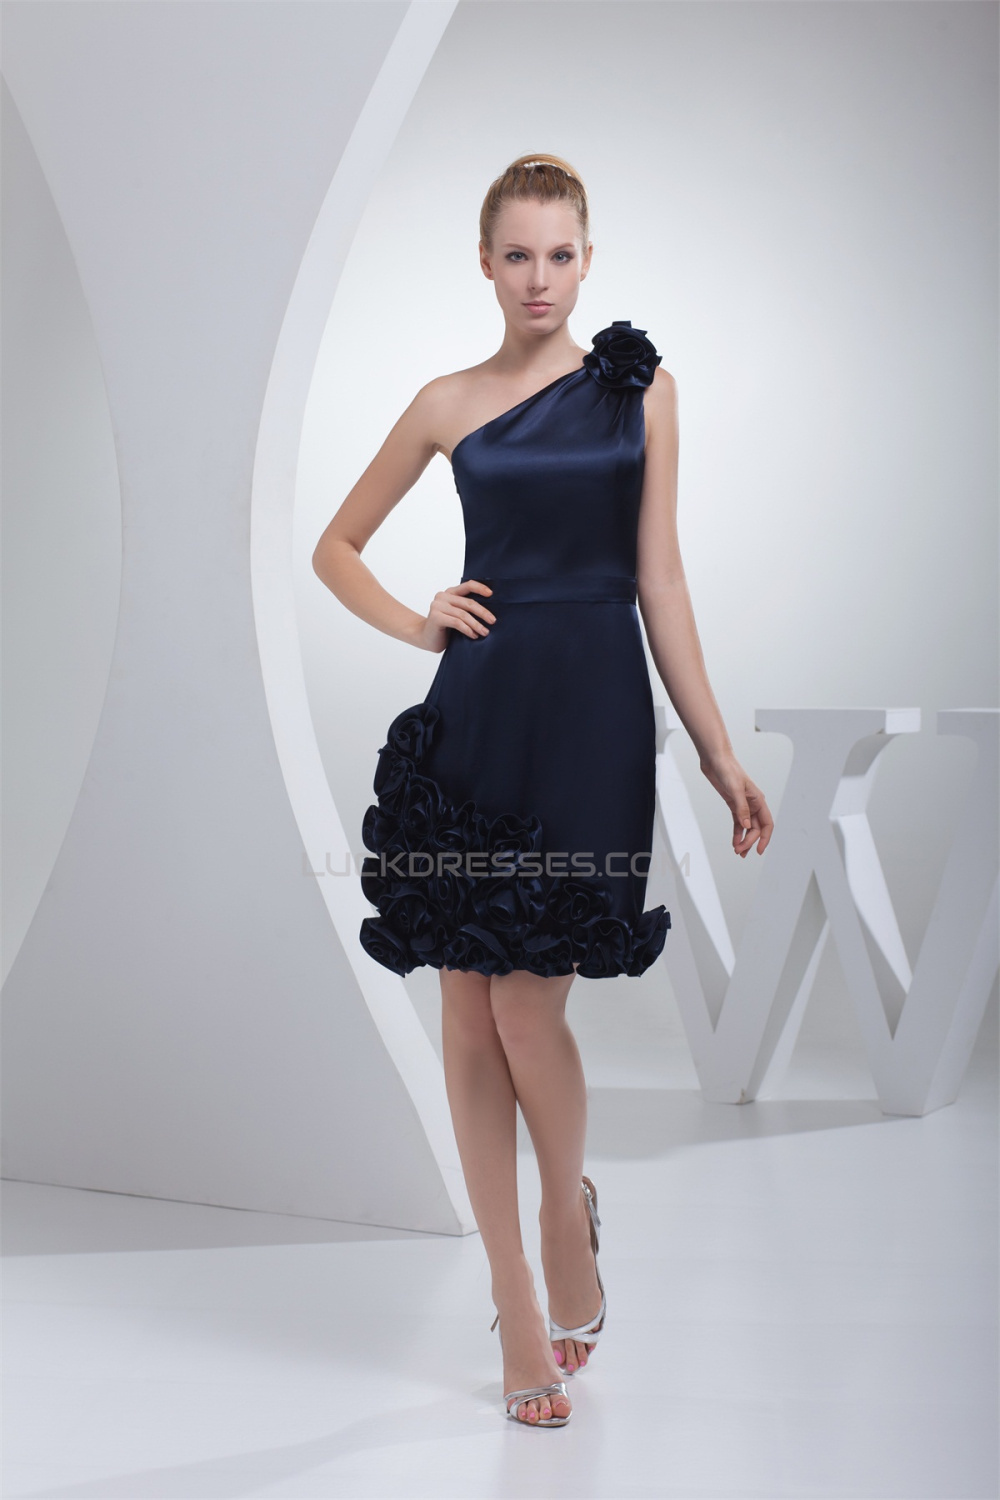 One Shoulder Handmade Flowers Knee Length Short Navy Blue